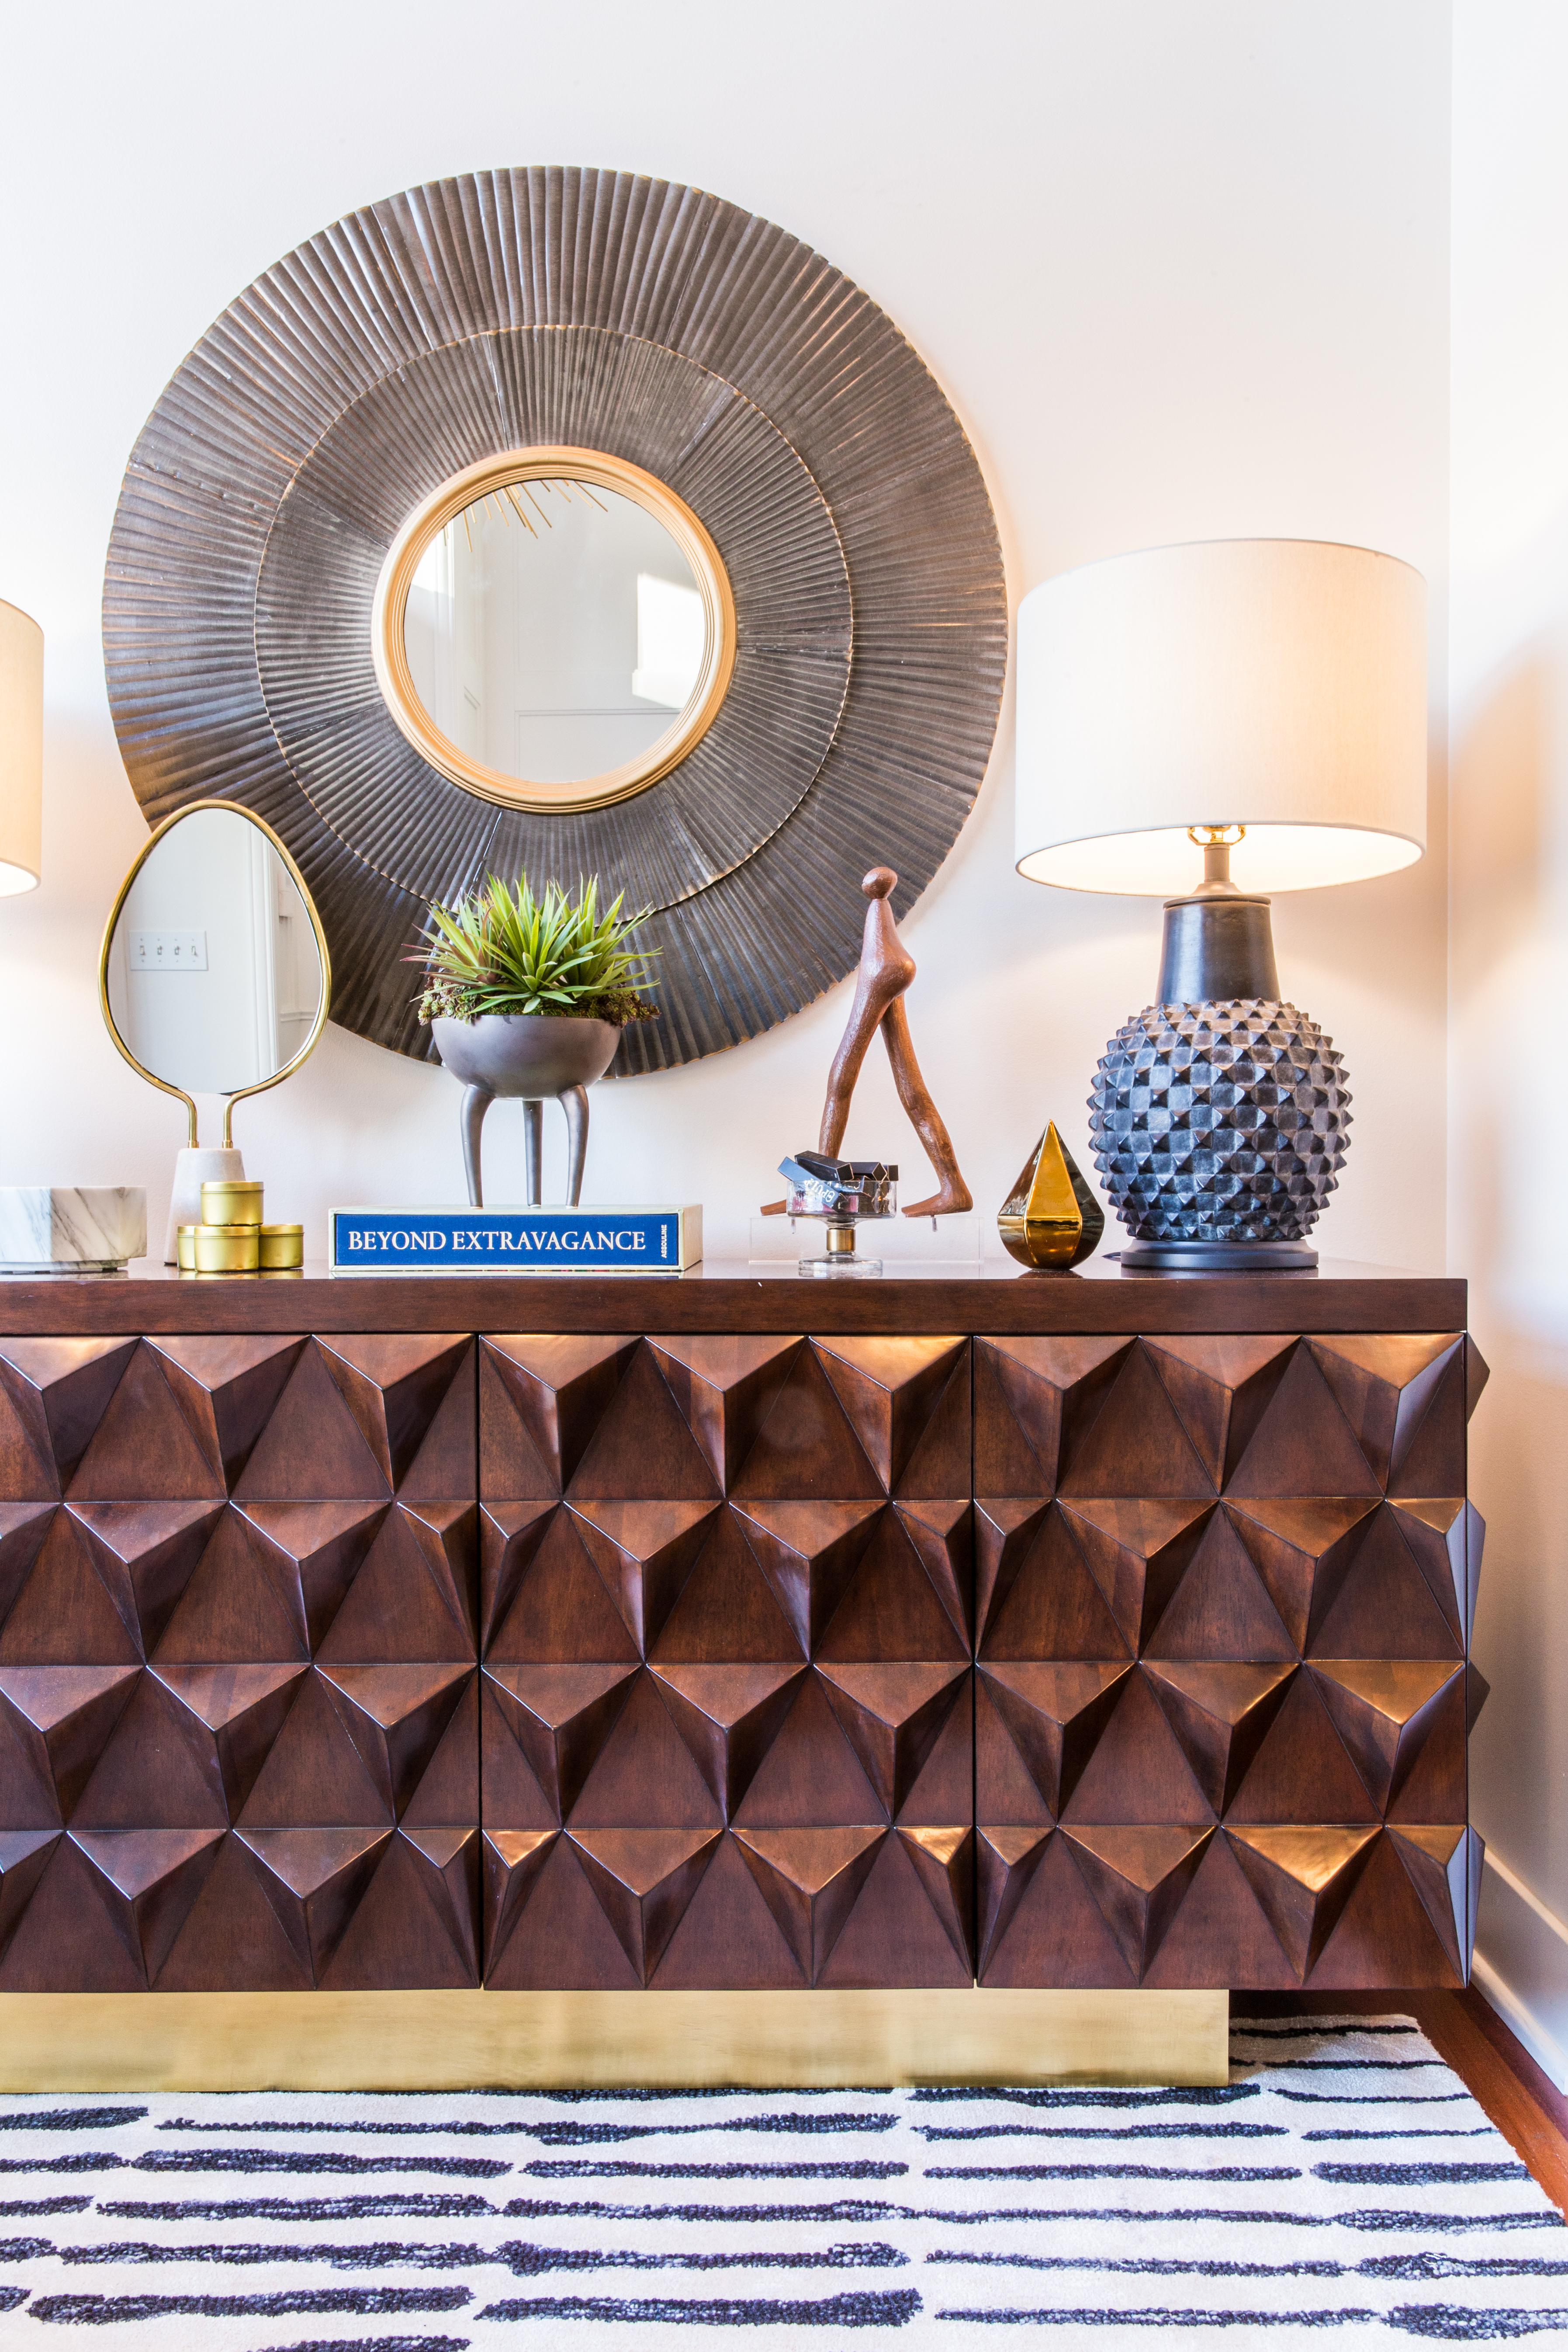 Pulp Design Studios and The Mine Home and Entertaining Goods Pop Up Shop with Dimensional Credenza, Round Mirror and Human Figure Sculpture Accessory